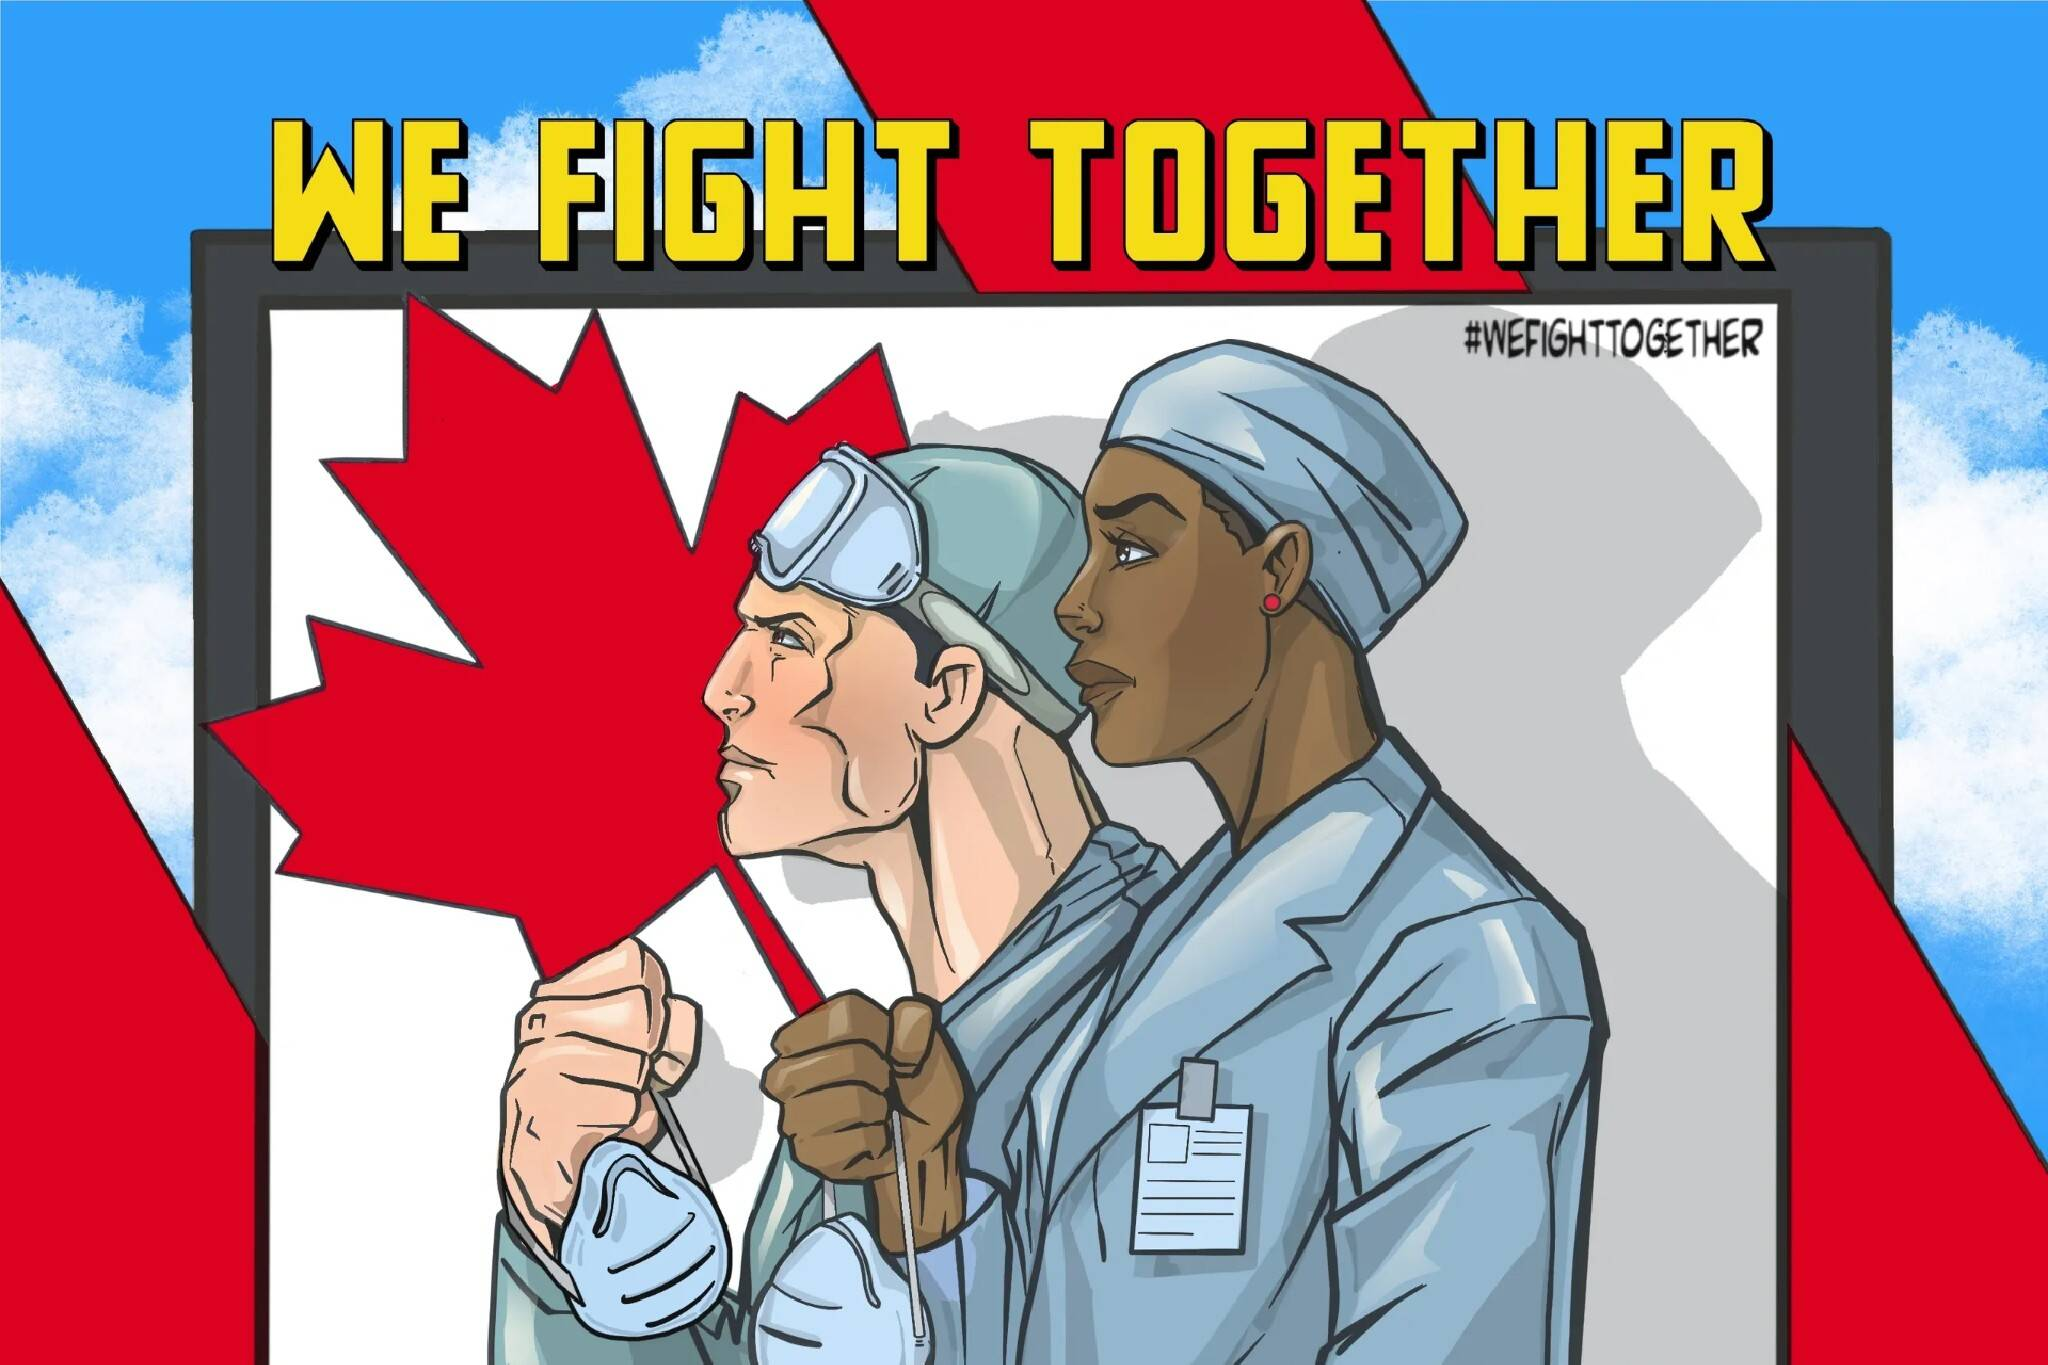 wefighttogether